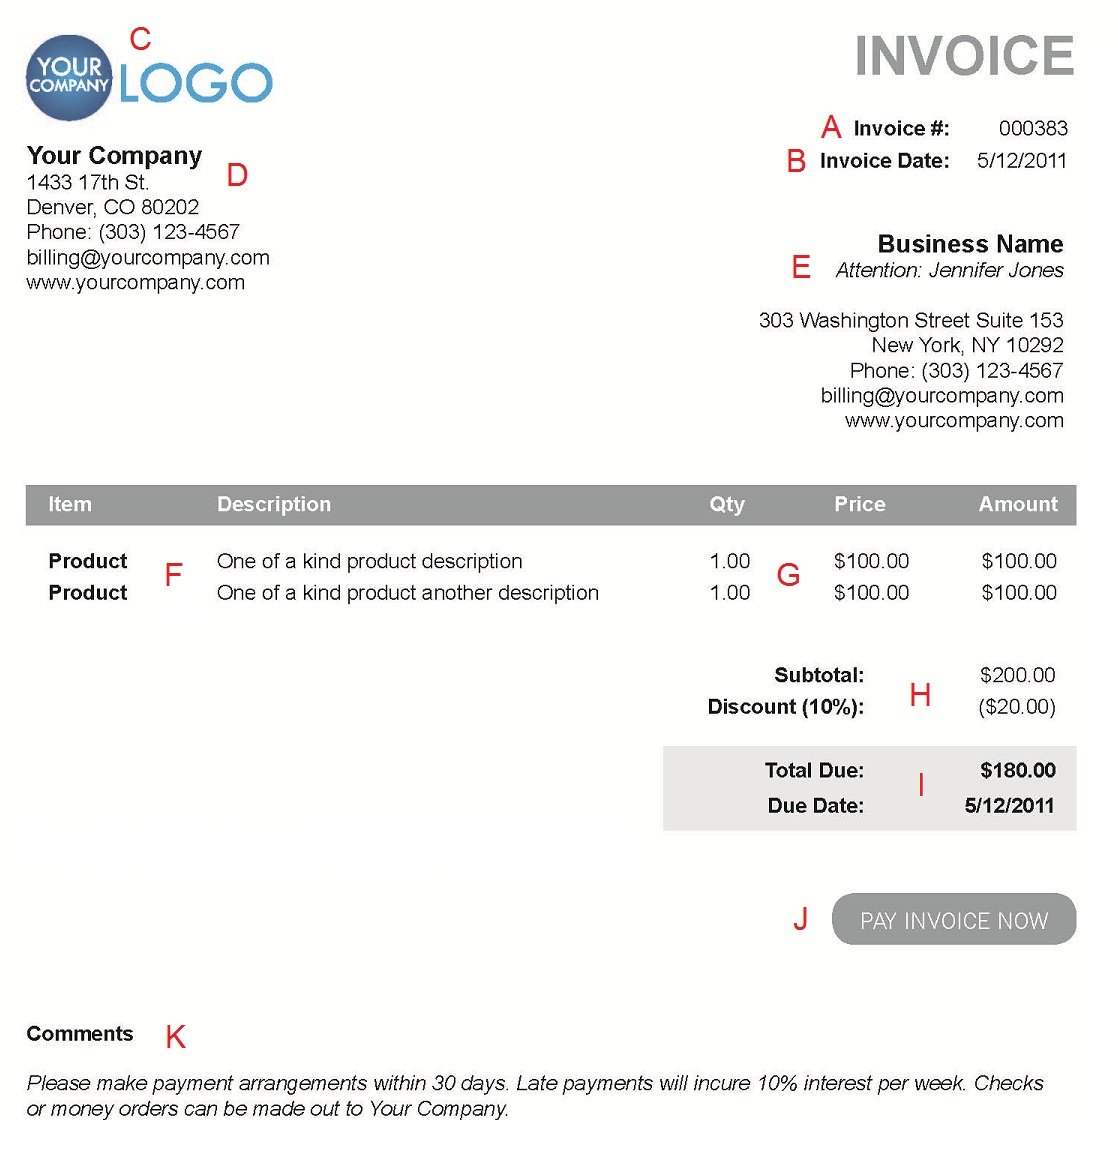 Opposenewapstandardsus  Sweet The  Different Sections Of An Electronic Payment Invoice With Outstanding A  With Attractive Simple Free Invoice Template Also Mazda  Invoice In Addition How Do You Send An Invoice And Proper Invoice Format As Well As Quick Books Invoices Additionally Excel Billing Invoice Template From Paysimplecom With Opposenewapstandardsus  Outstanding The  Different Sections Of An Electronic Payment Invoice With Attractive A  And Sweet Simple Free Invoice Template Also Mazda  Invoice In Addition How Do You Send An Invoice From Paysimplecom